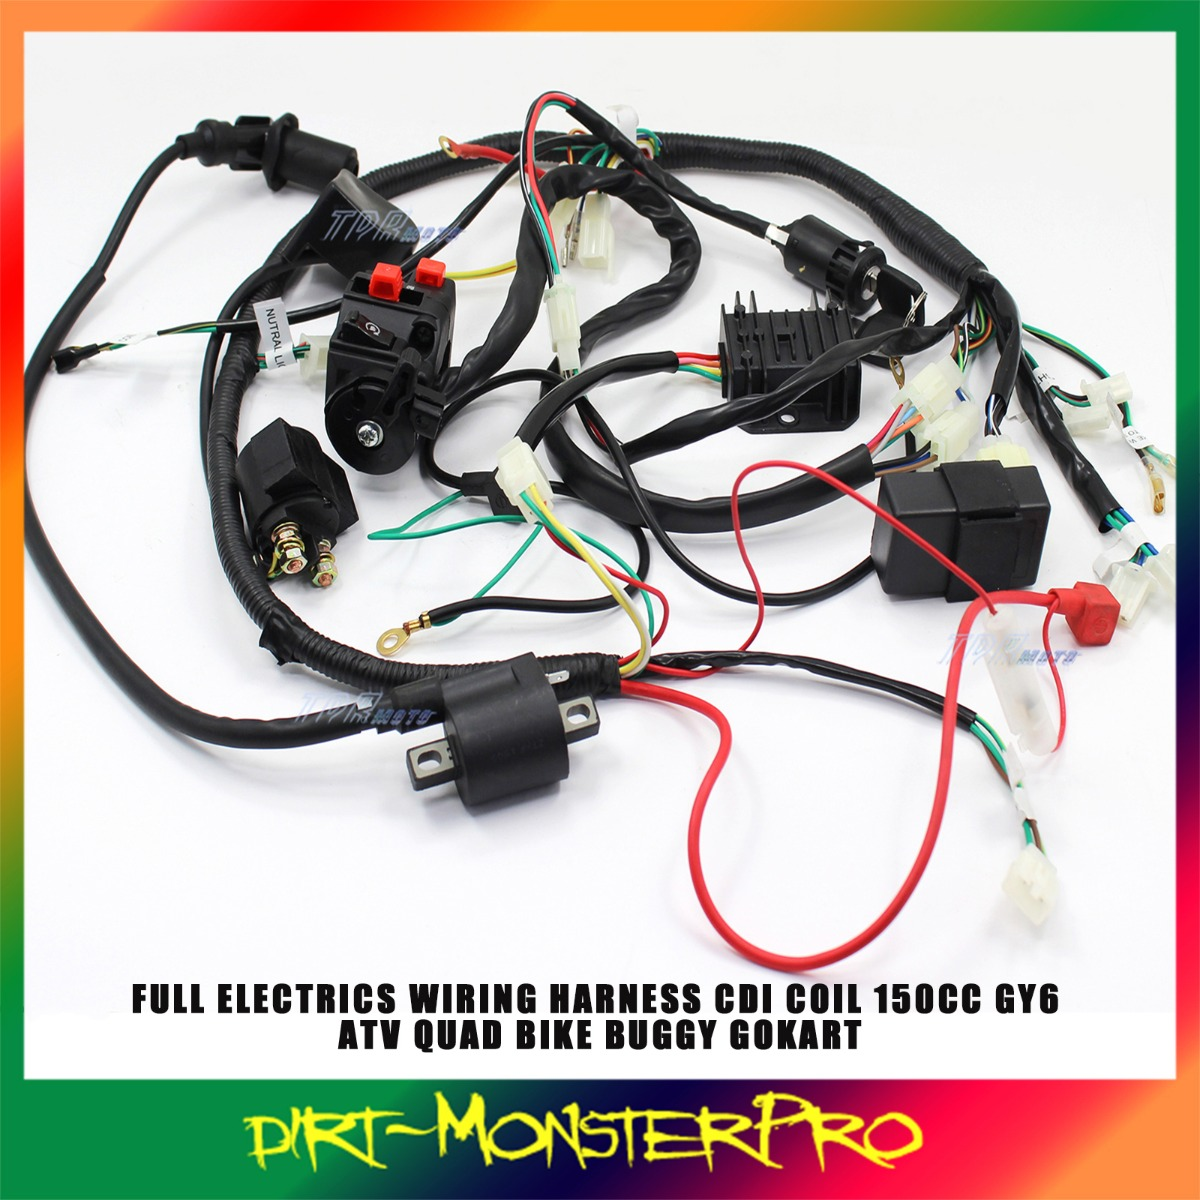 TD356 DIRT buggy wiring harness loom gy6 150cc chinese electric start kandi gy6 buggy wiring harness at gsmx.co